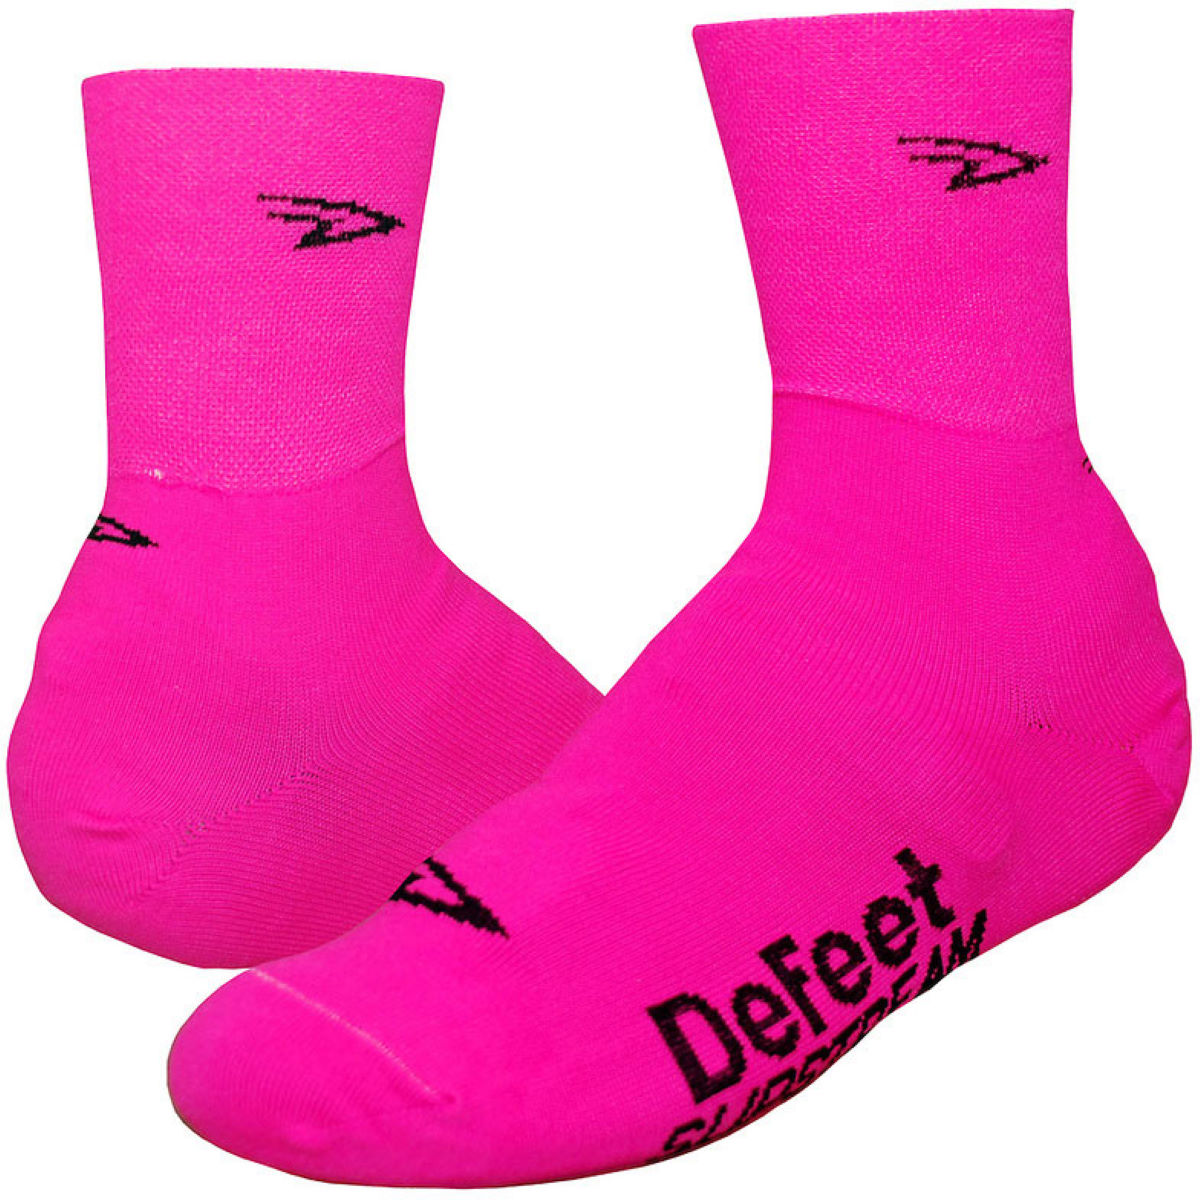 Couvre-chaussures DeFeet Slipstream (fluos) - L/XL Rose